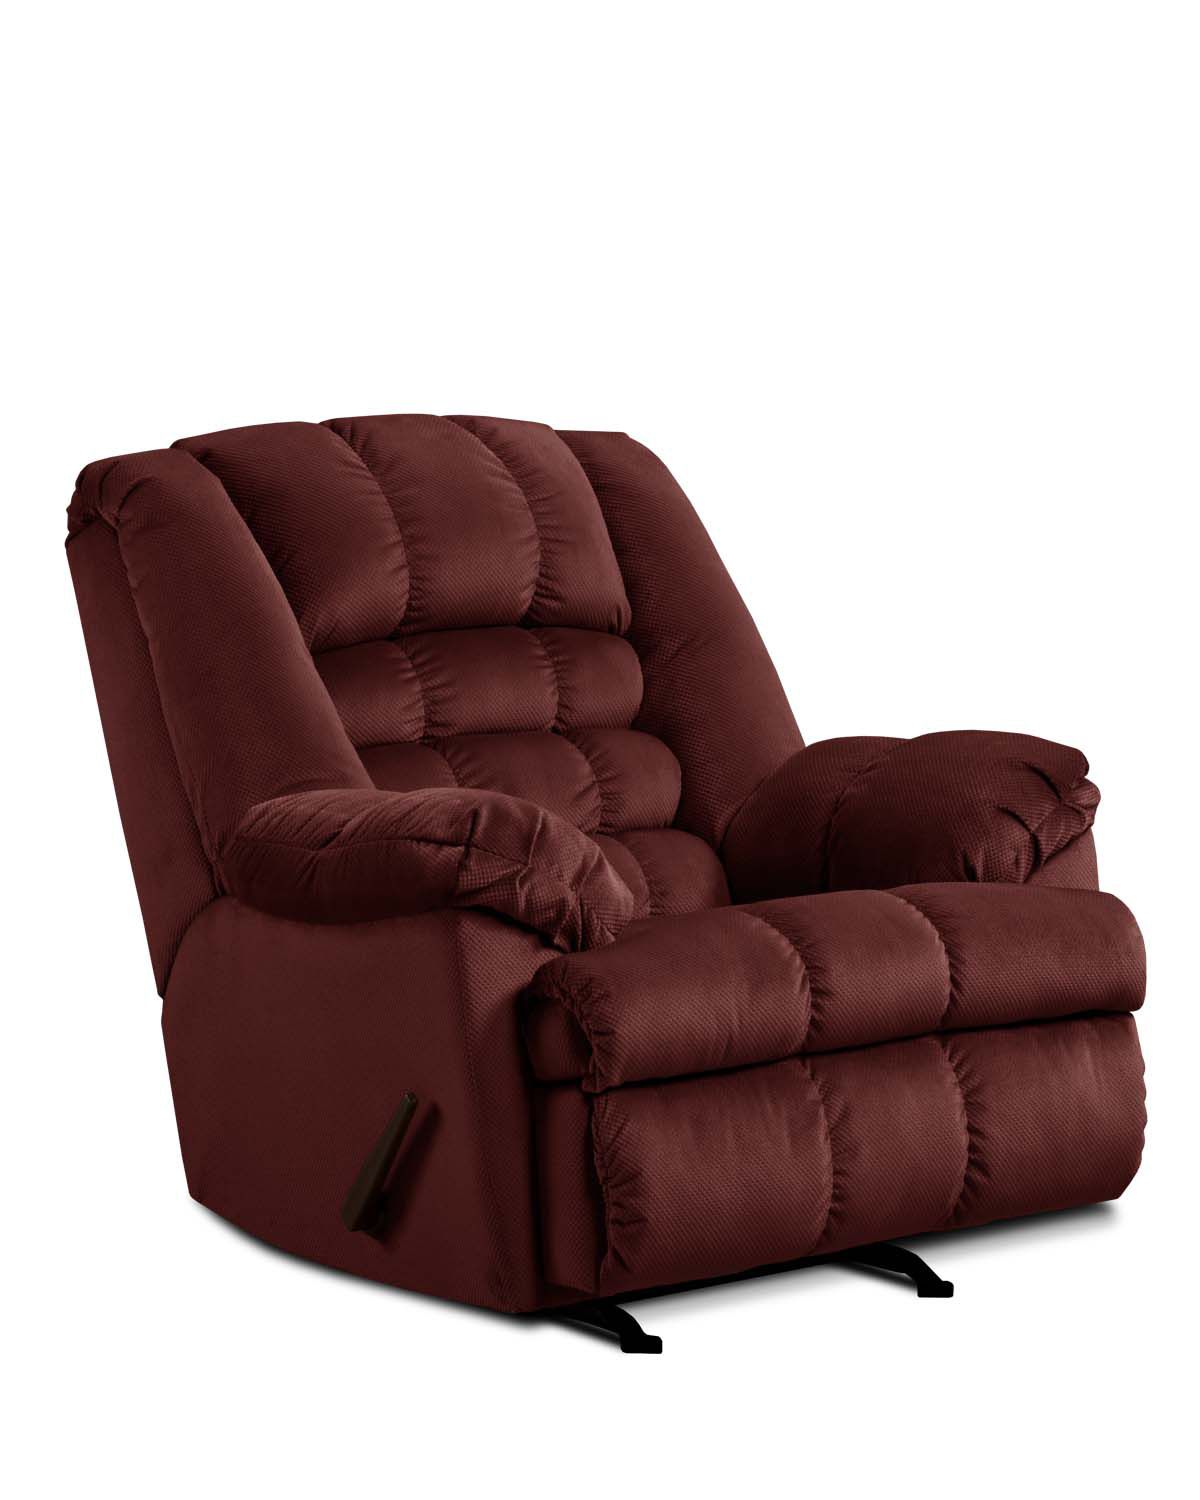 Simmons Upholstery Omni 3 Way Rocker/Recliner